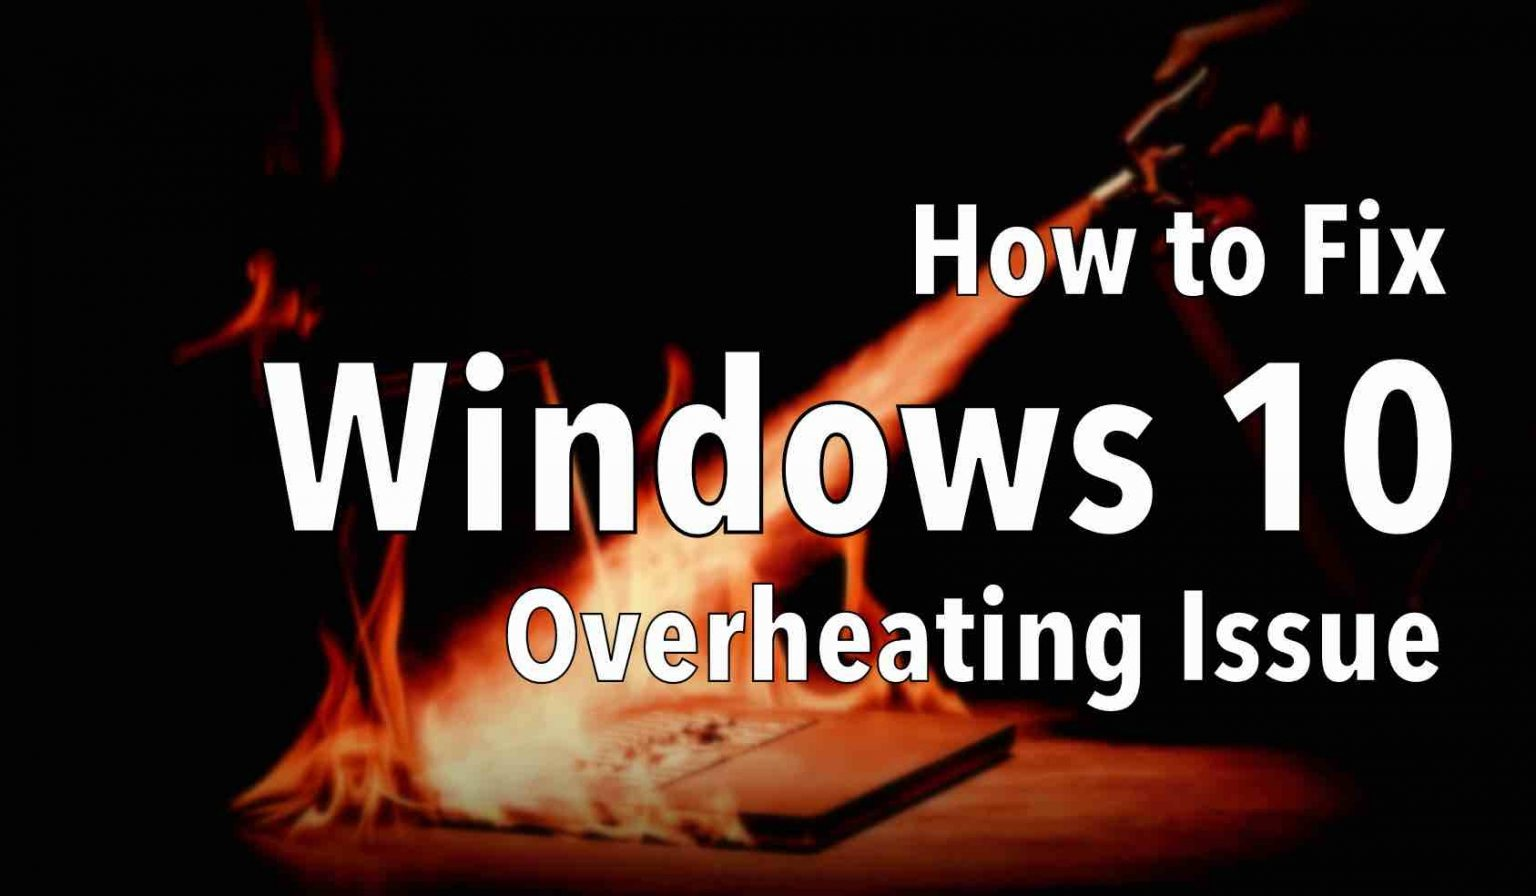 windows-10-overheating-768x448@2x